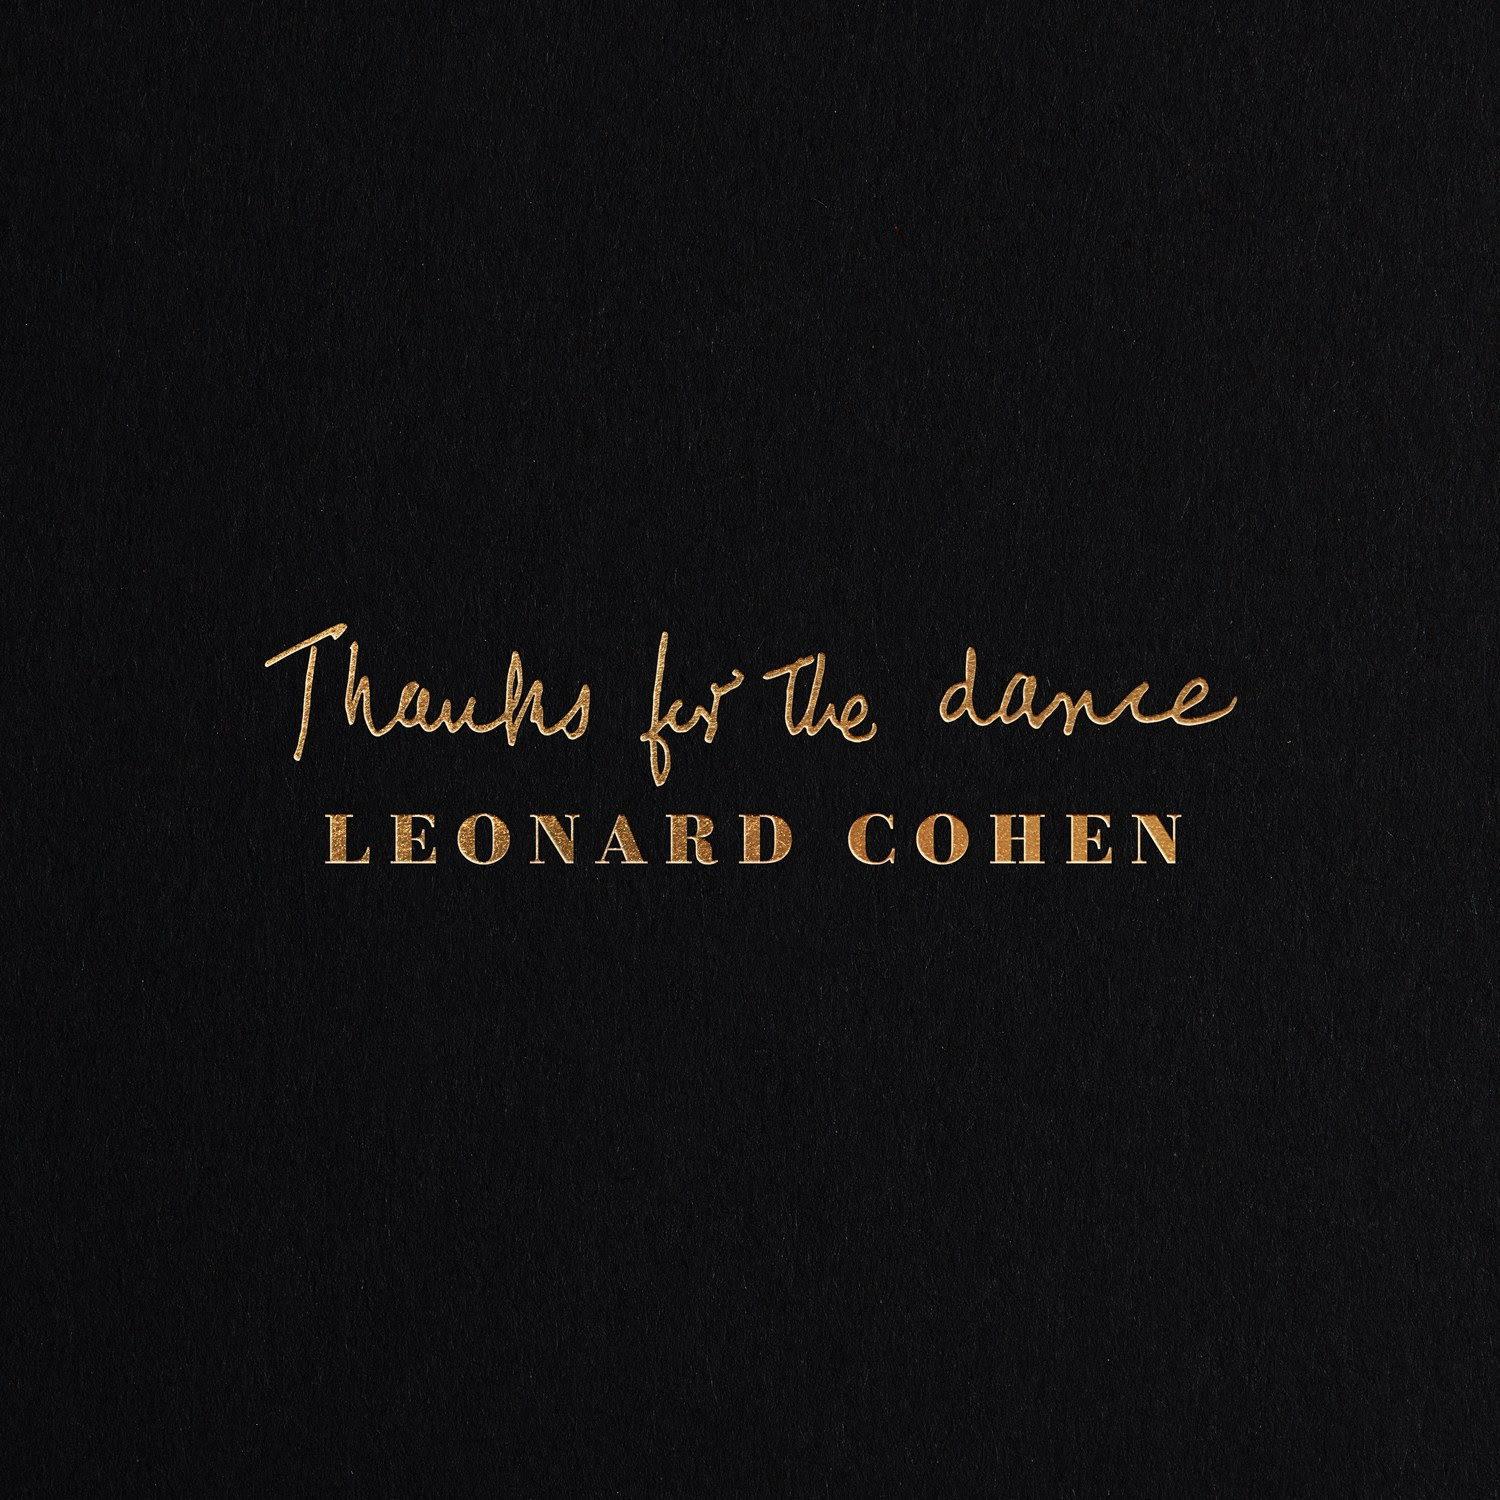 Thanks For The Dance by Leonard Cohen image